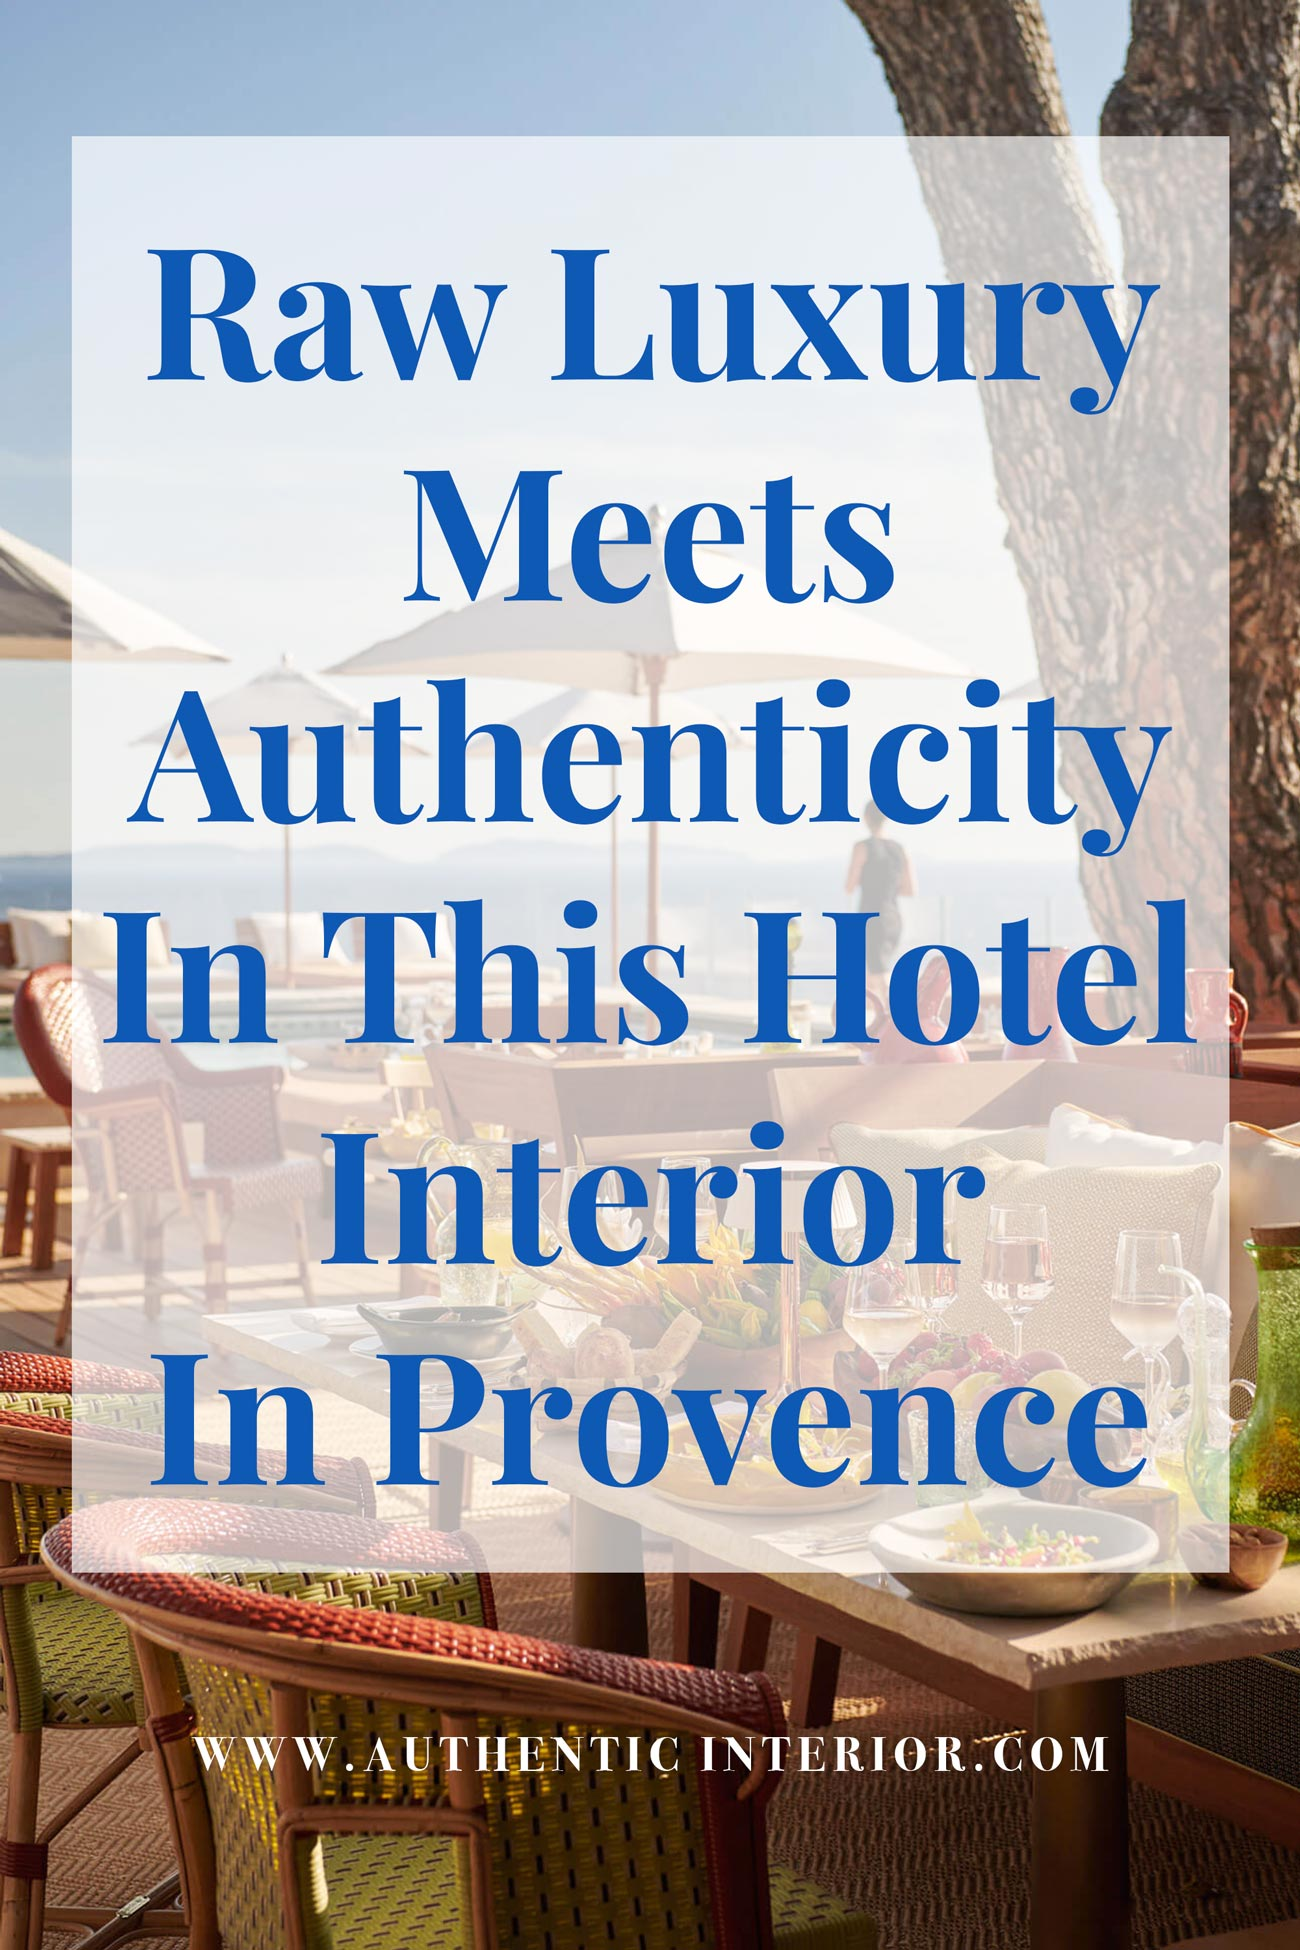 Raw-Luxury-Meets-Authenticity-In-This-Hotel-Interior-In-Provence_authentic-interior-pinterest